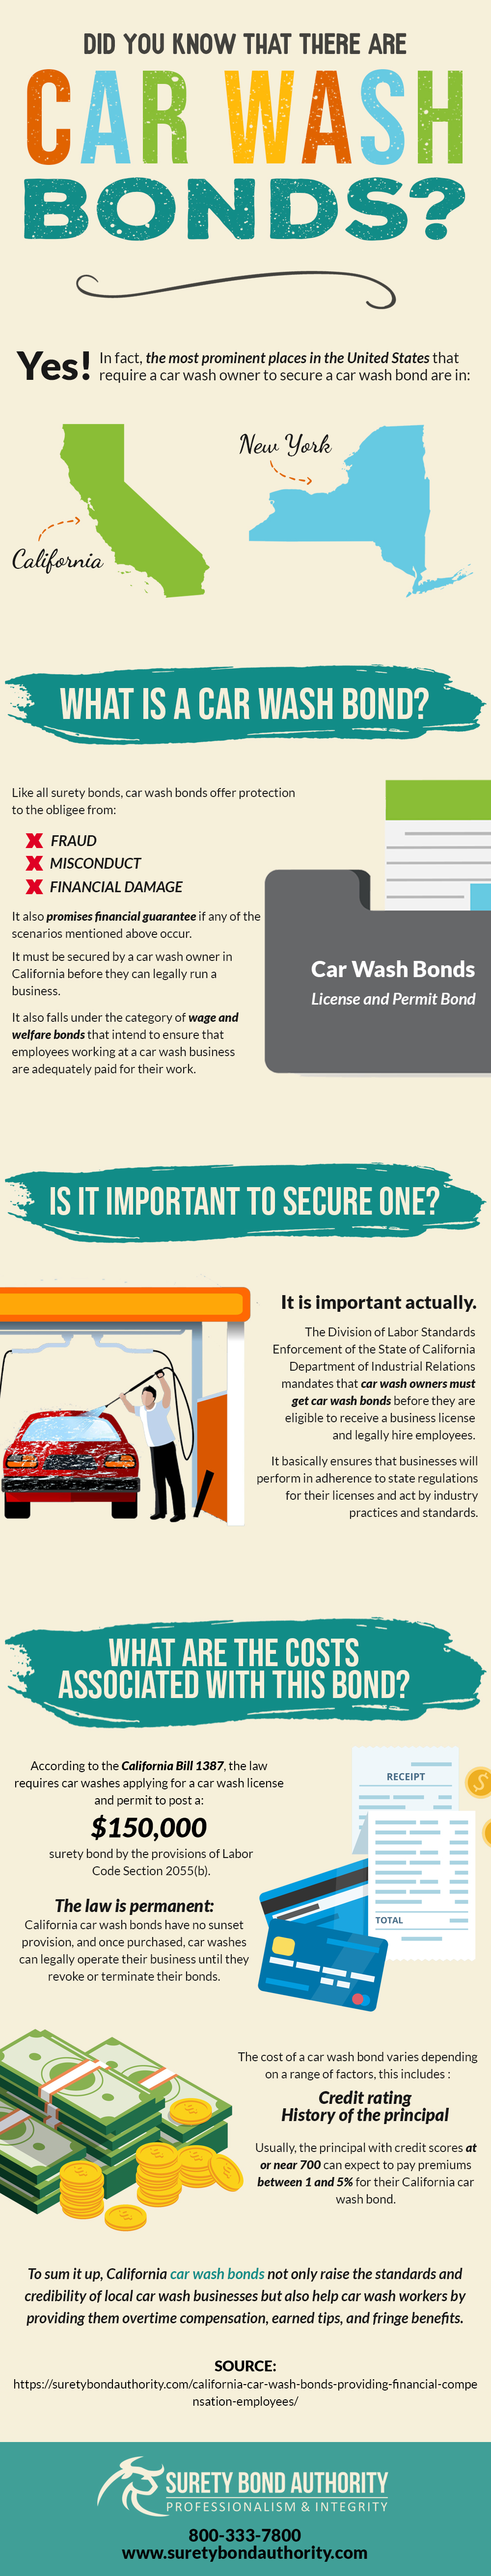 Car Wash Bonds Infographic